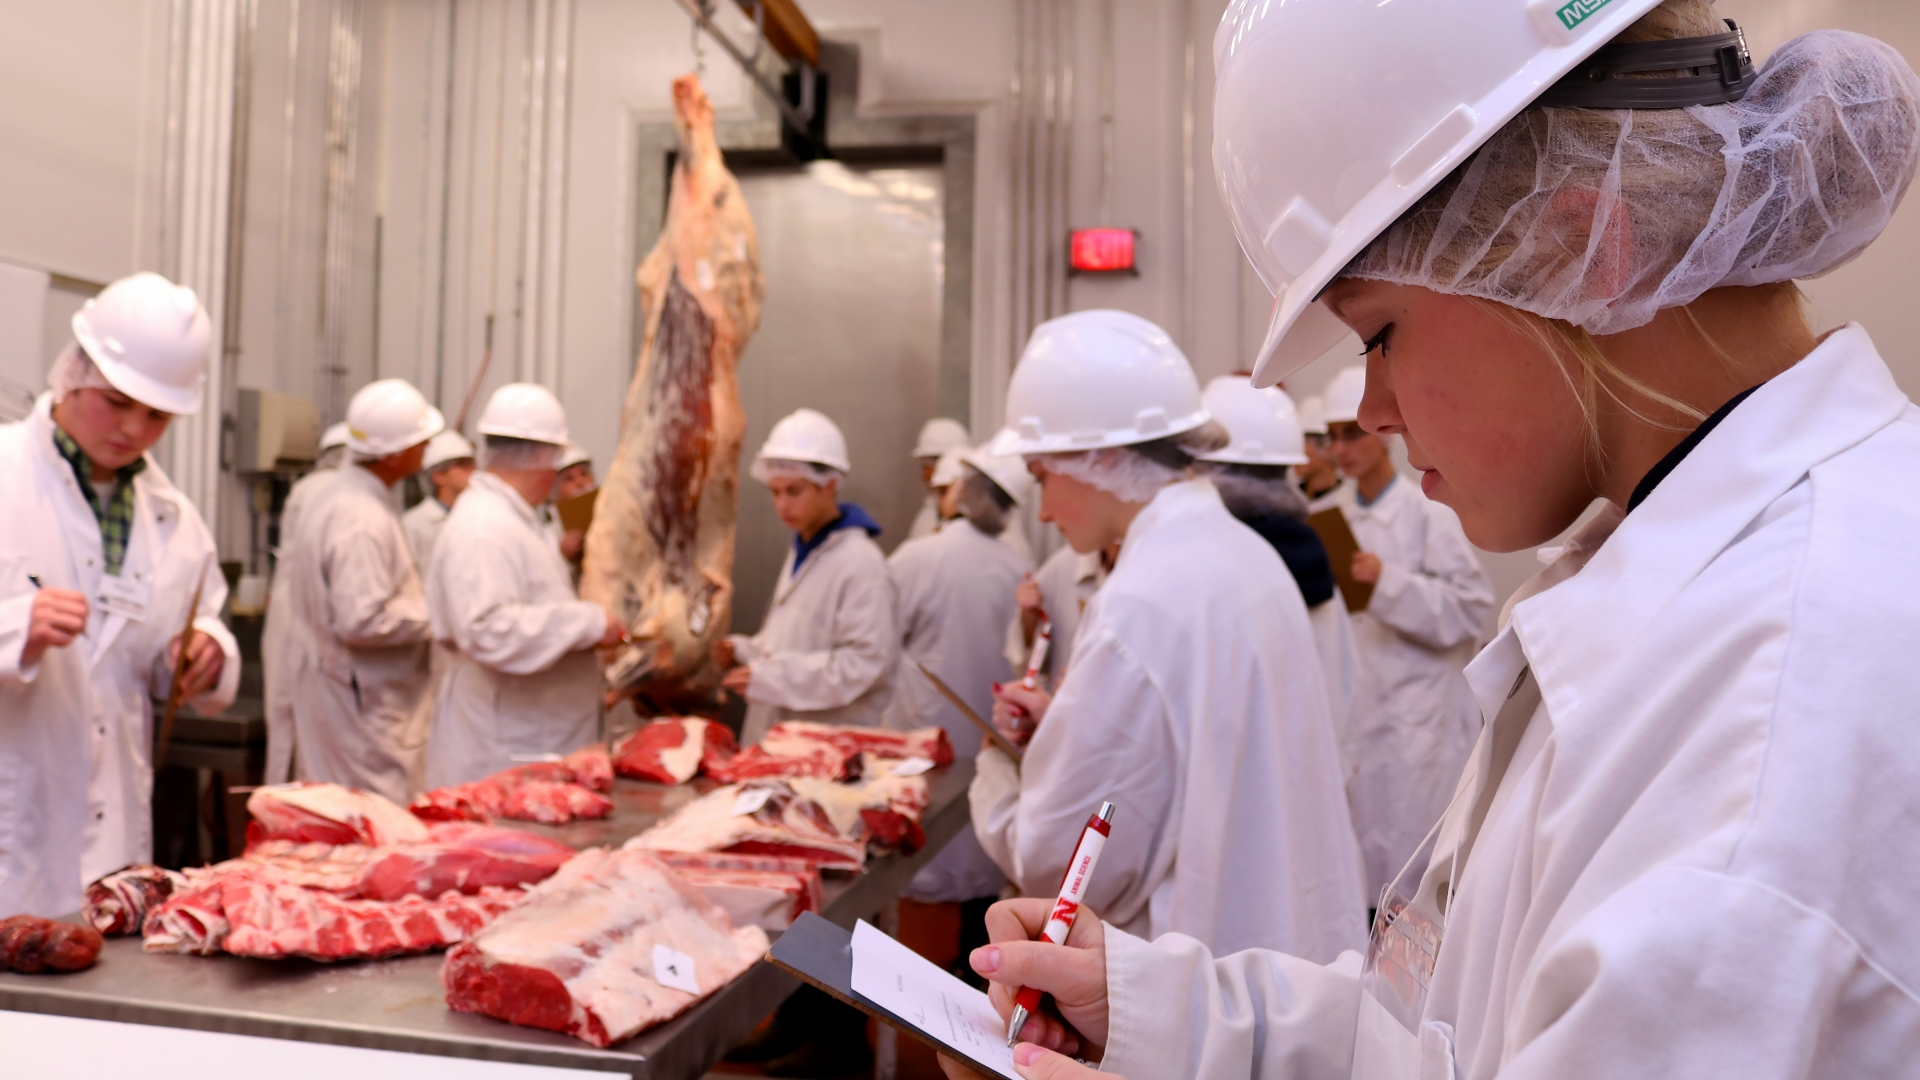 Some students evaluating meat that is hanging.